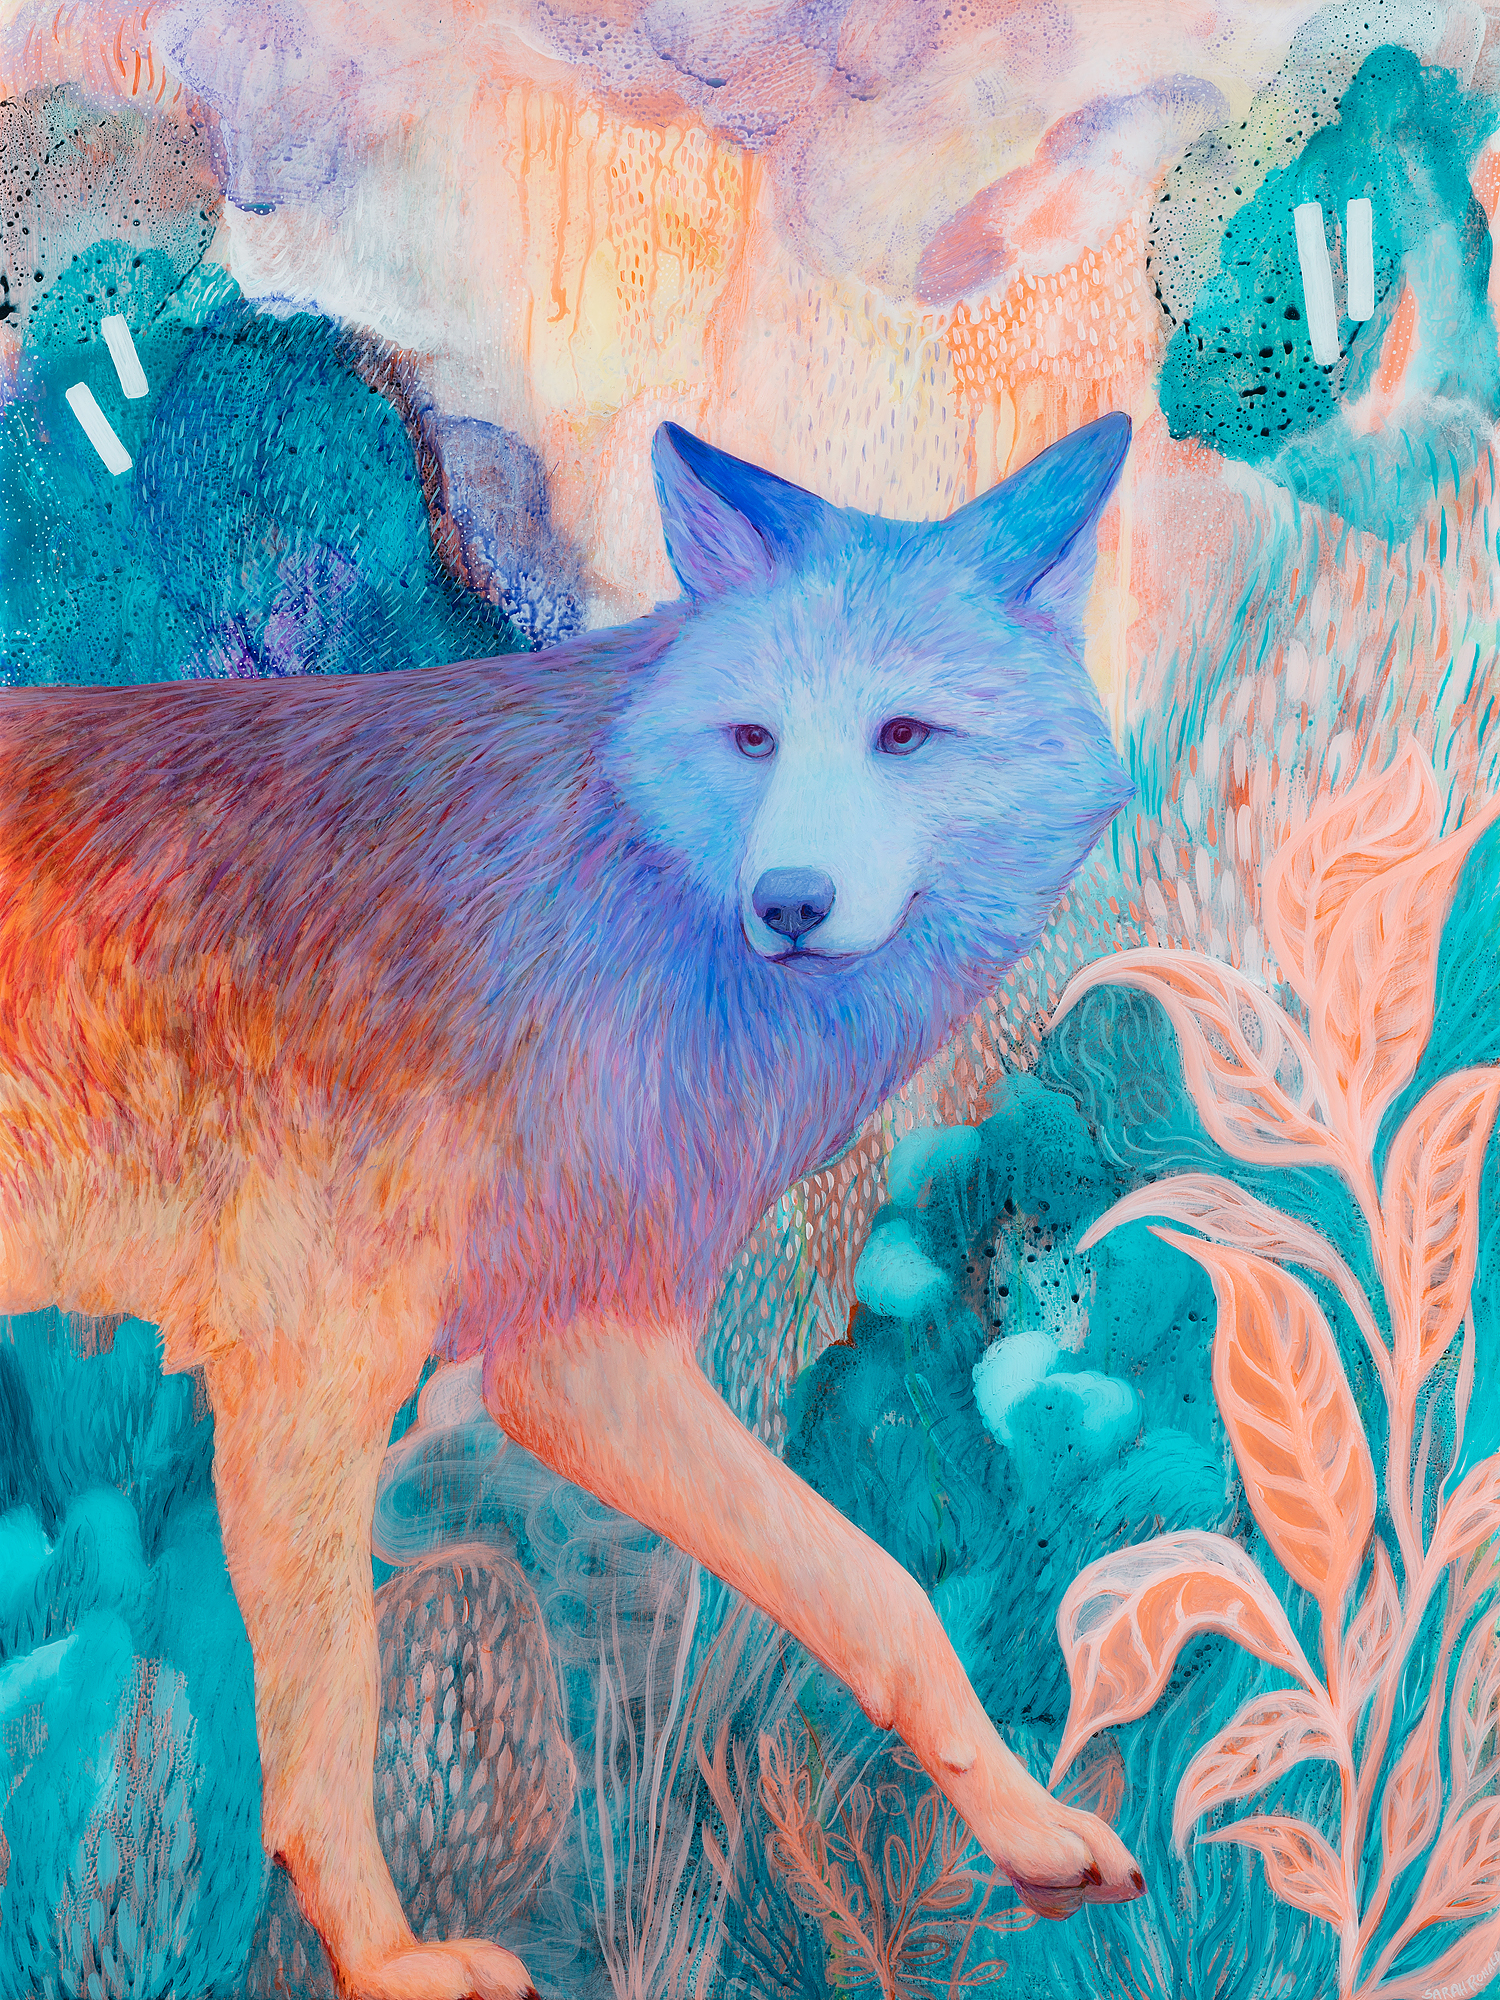 Zen Coyote , 2018. Coloured pencil, acrylic, and resin on wood panel, 24x18 inches. Available.